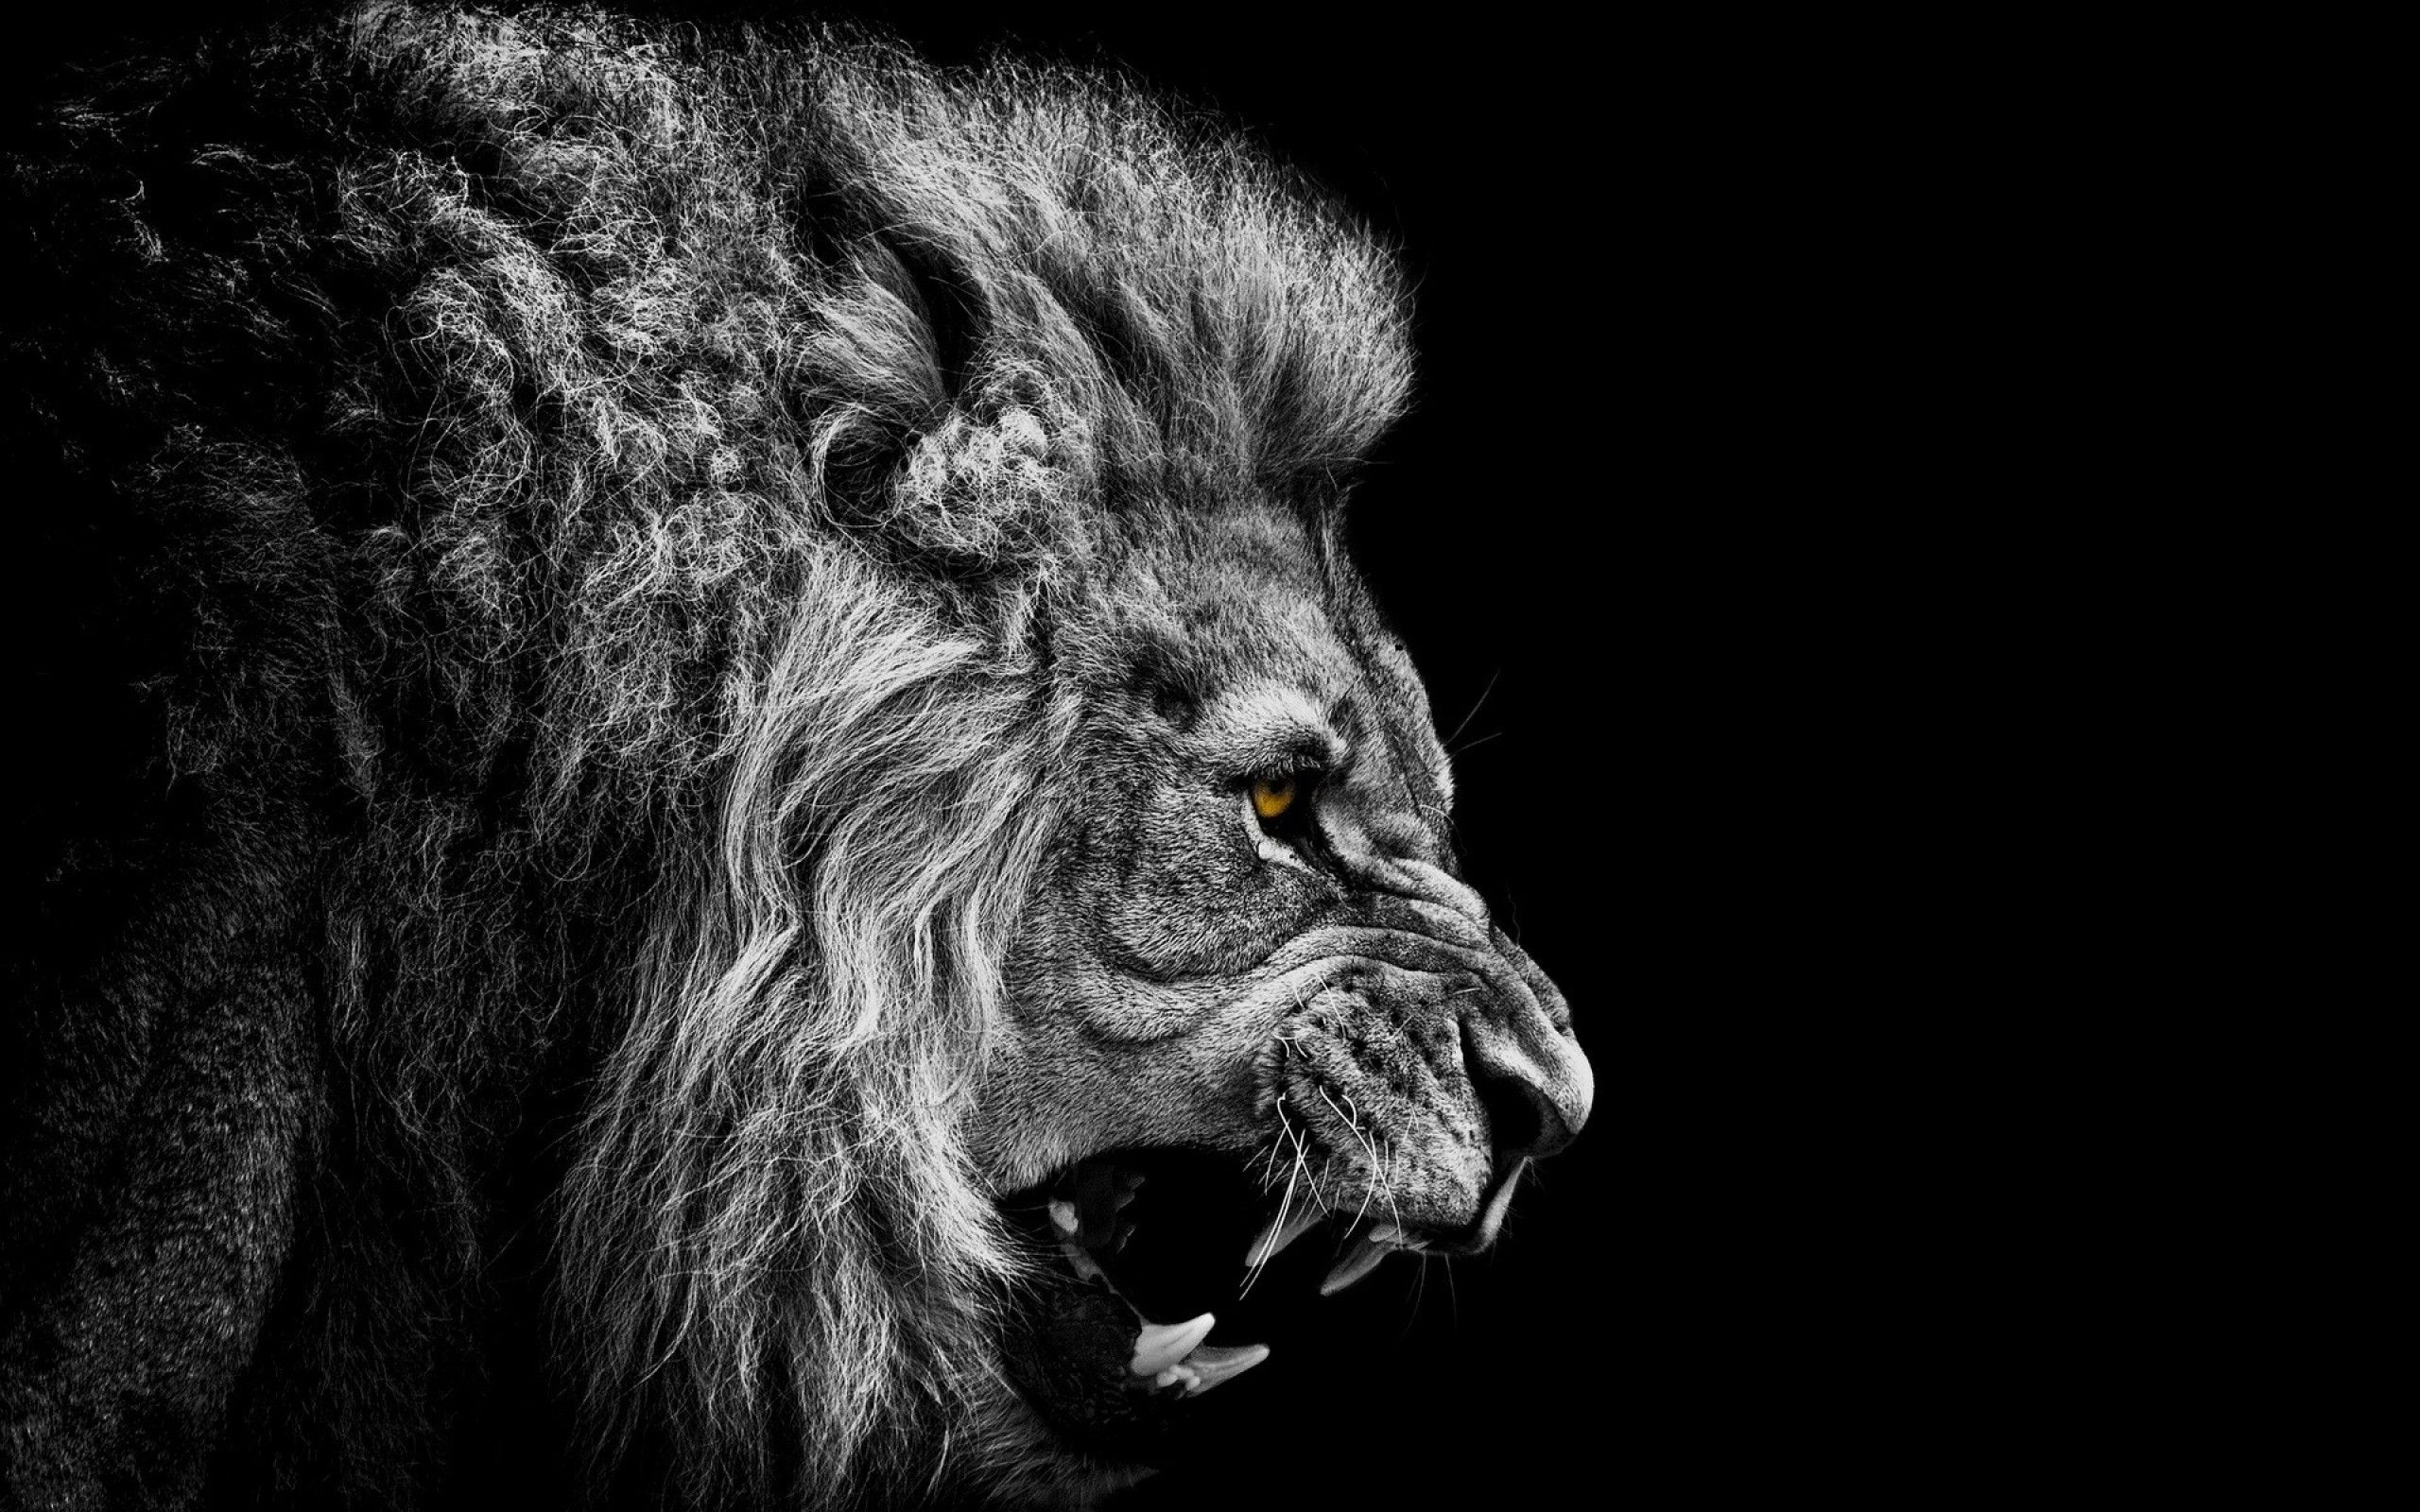 Pin By Pablo Gonzalez On Yeah Right Lion Wallpaper Black And White Lion Lion Hd Wallpaper Lion windows wallpapers pc in both widescreen and 4:3 resolutions. pinterest